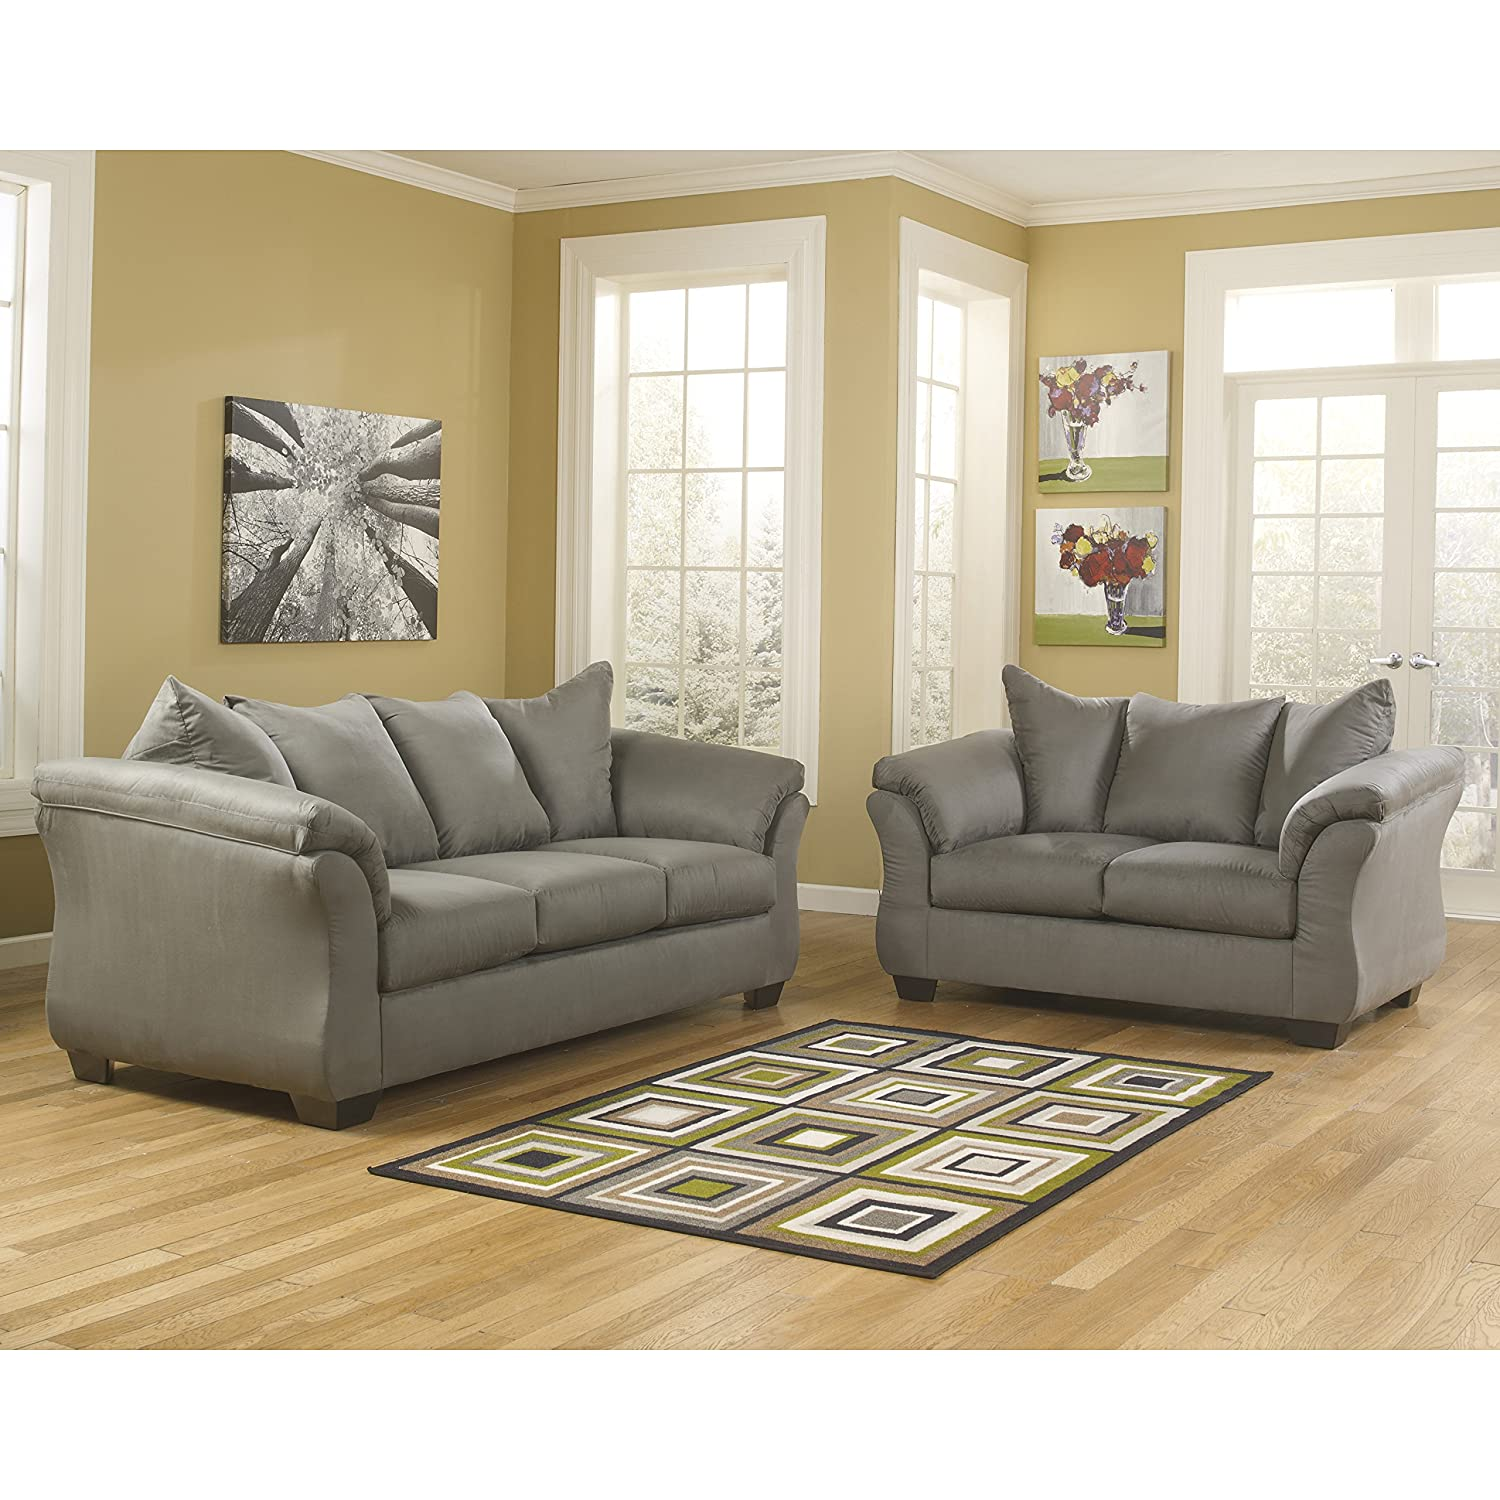 Amazon com flash furniture signature design by ashley darcy living room set in cobblestone microfiber kitchen dining